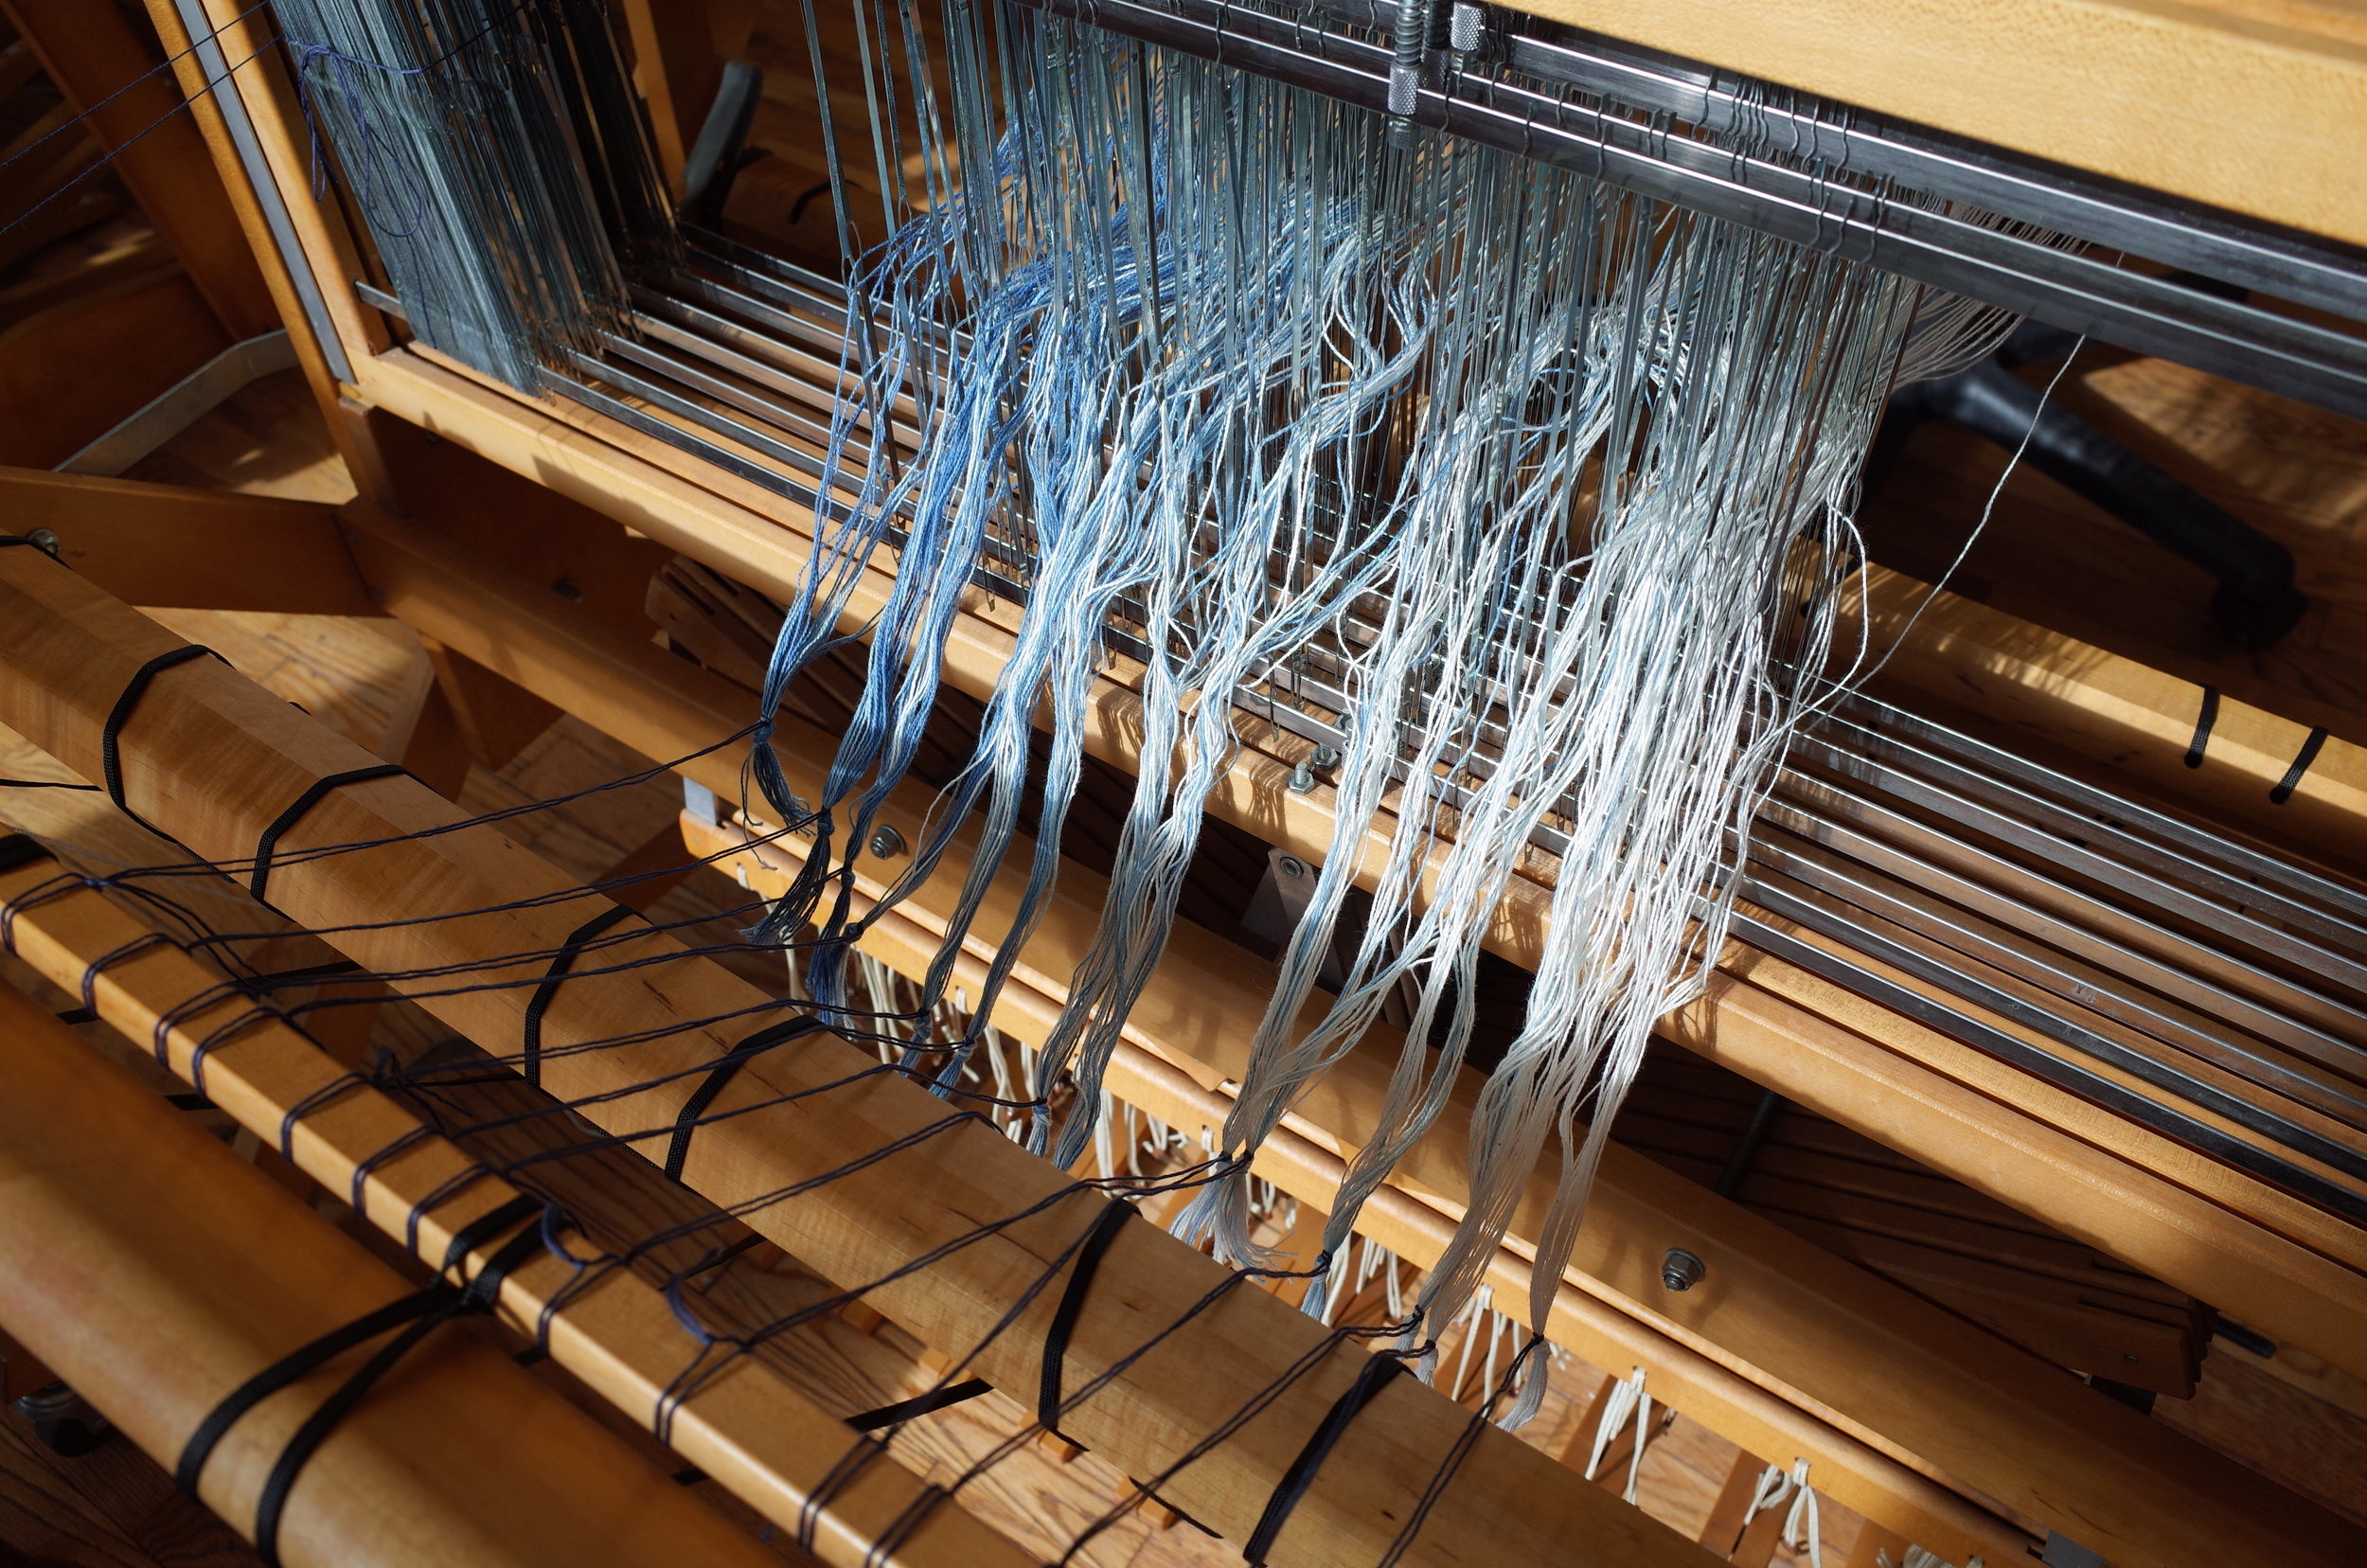 The warp is tied onto the back.